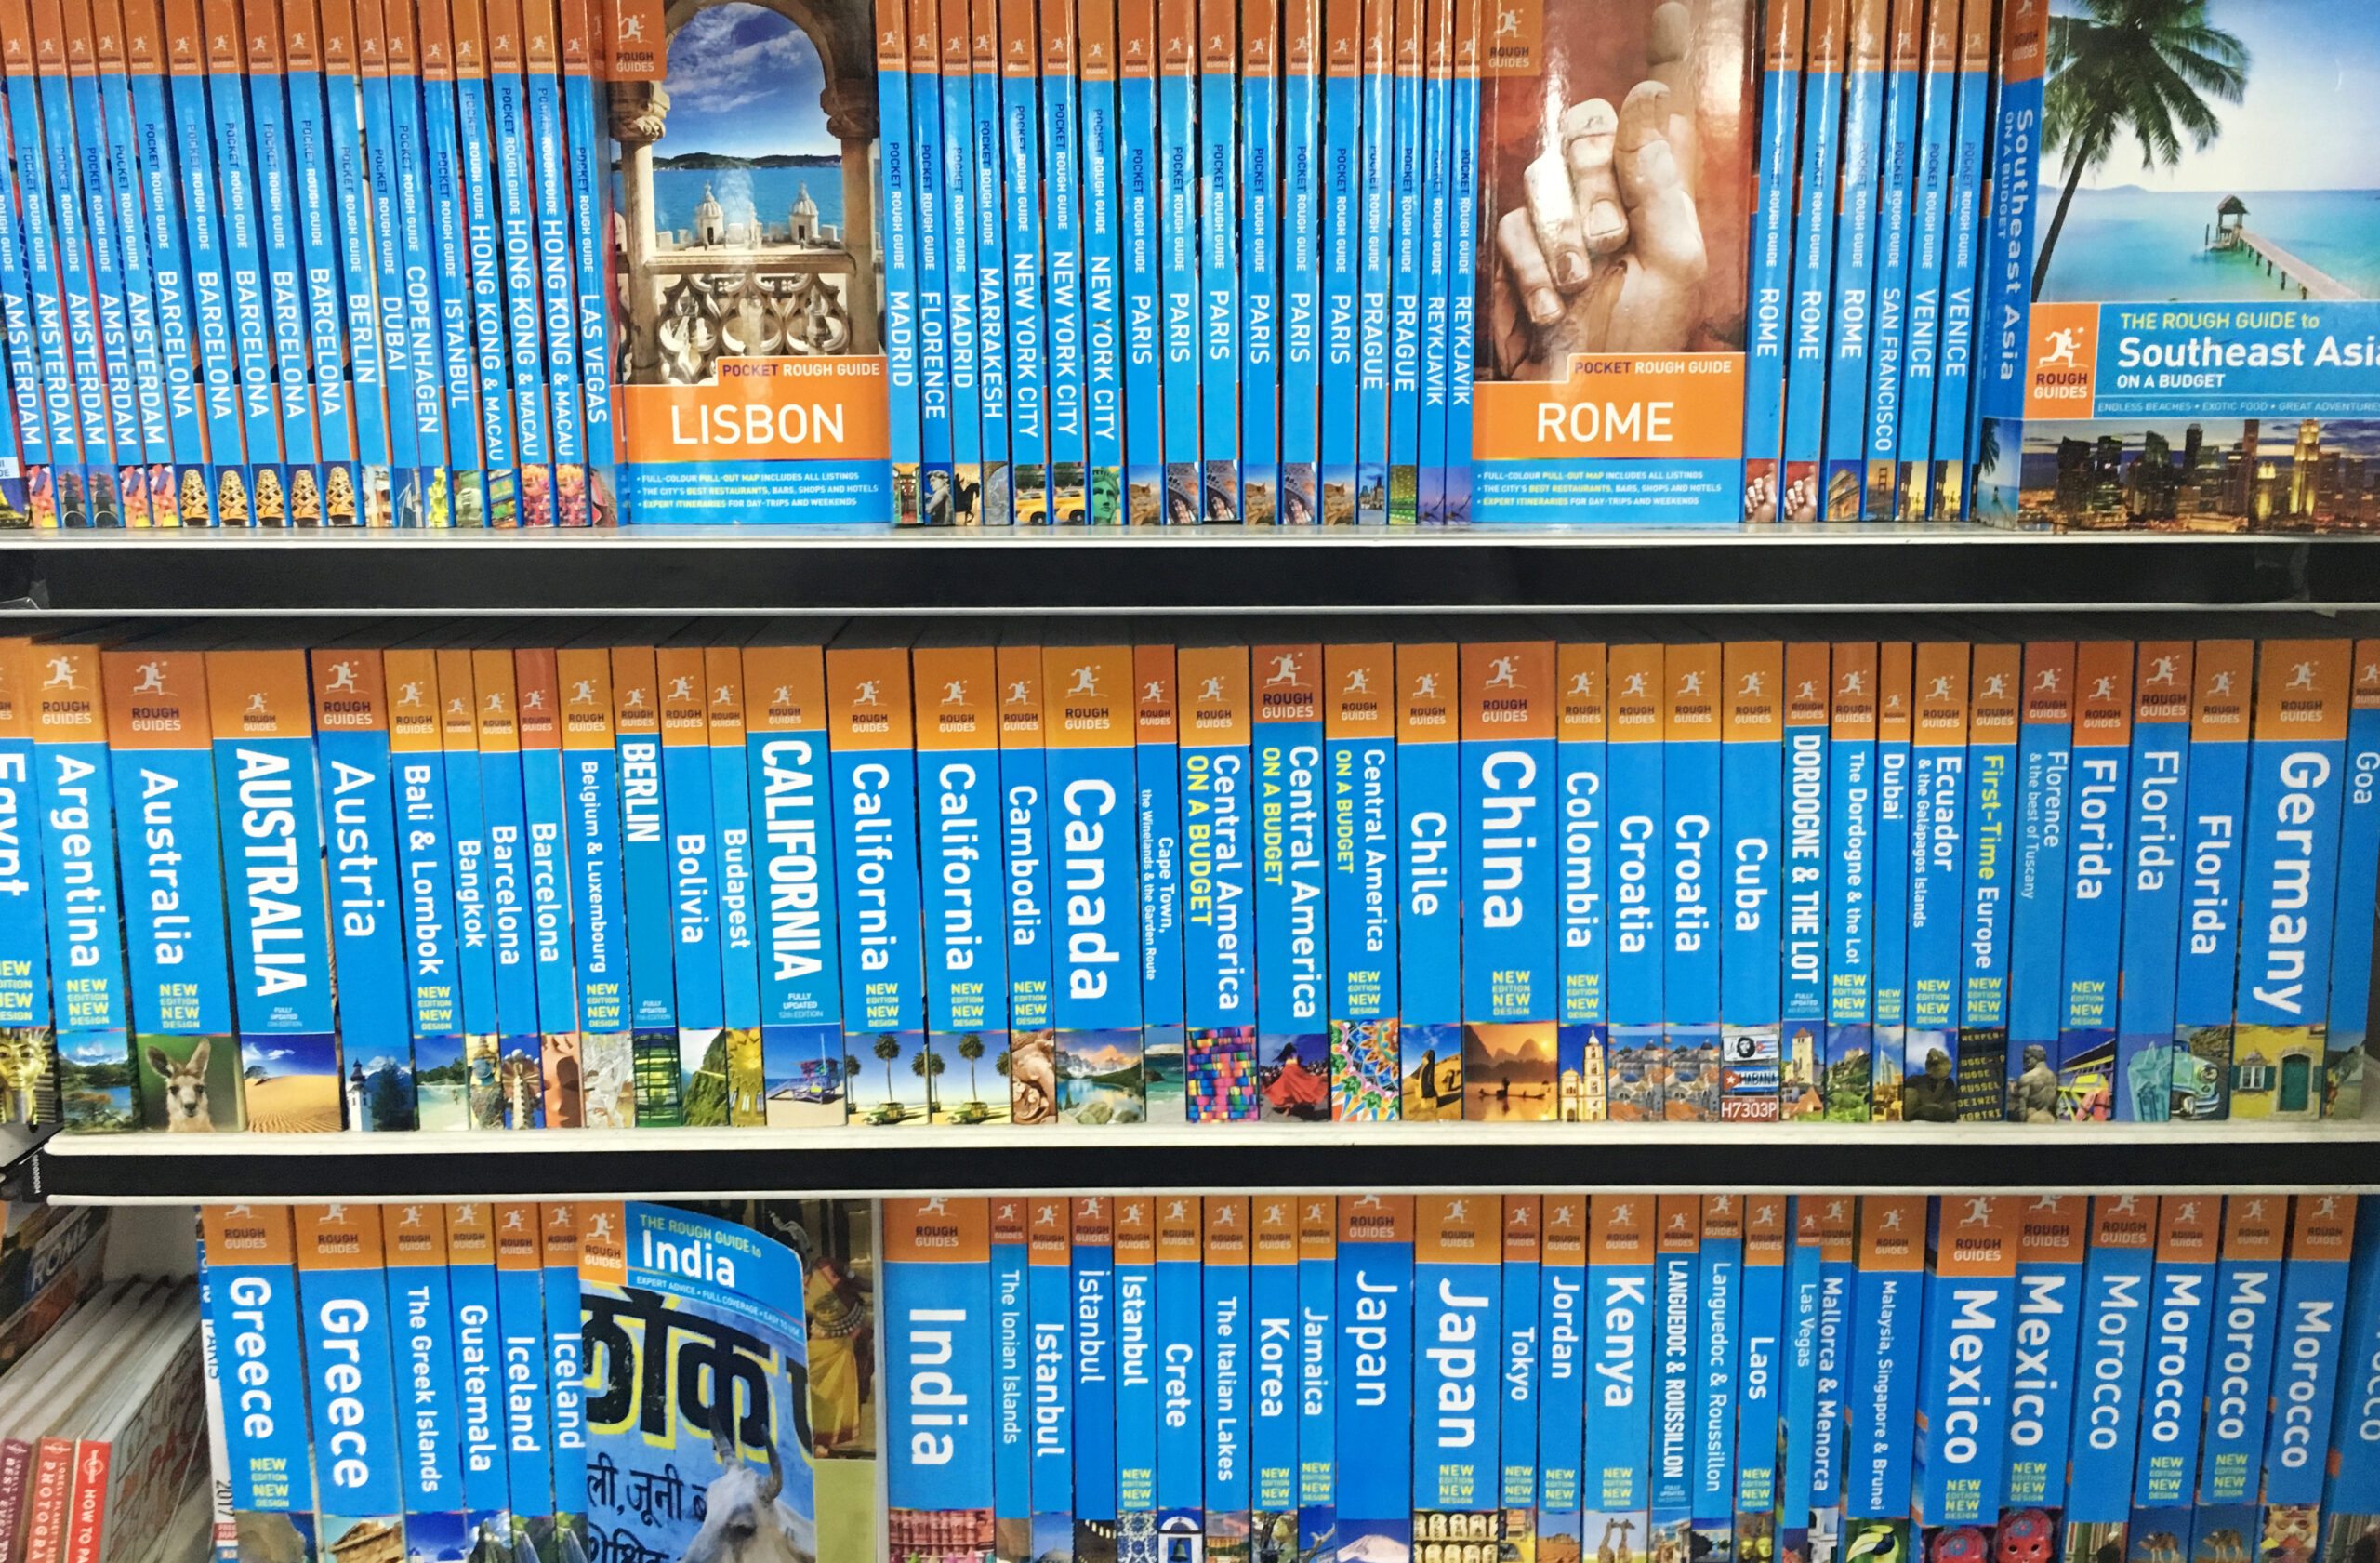 Rough Guide travel books on various countries stacked on a shelf